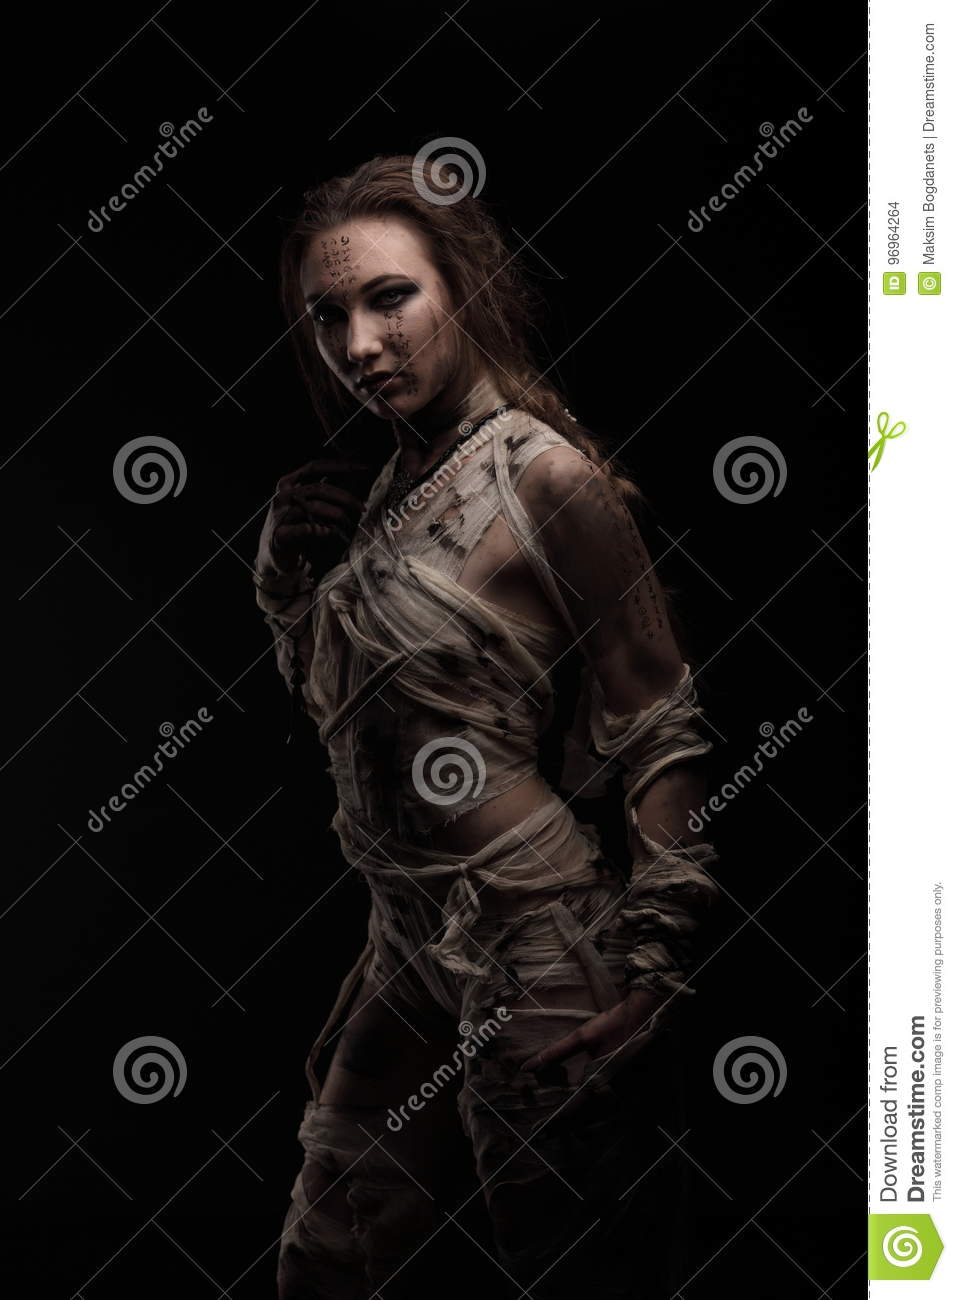 Beautiful model as egyptian mummy wrapped in bandages with hieroglyphics on skin.